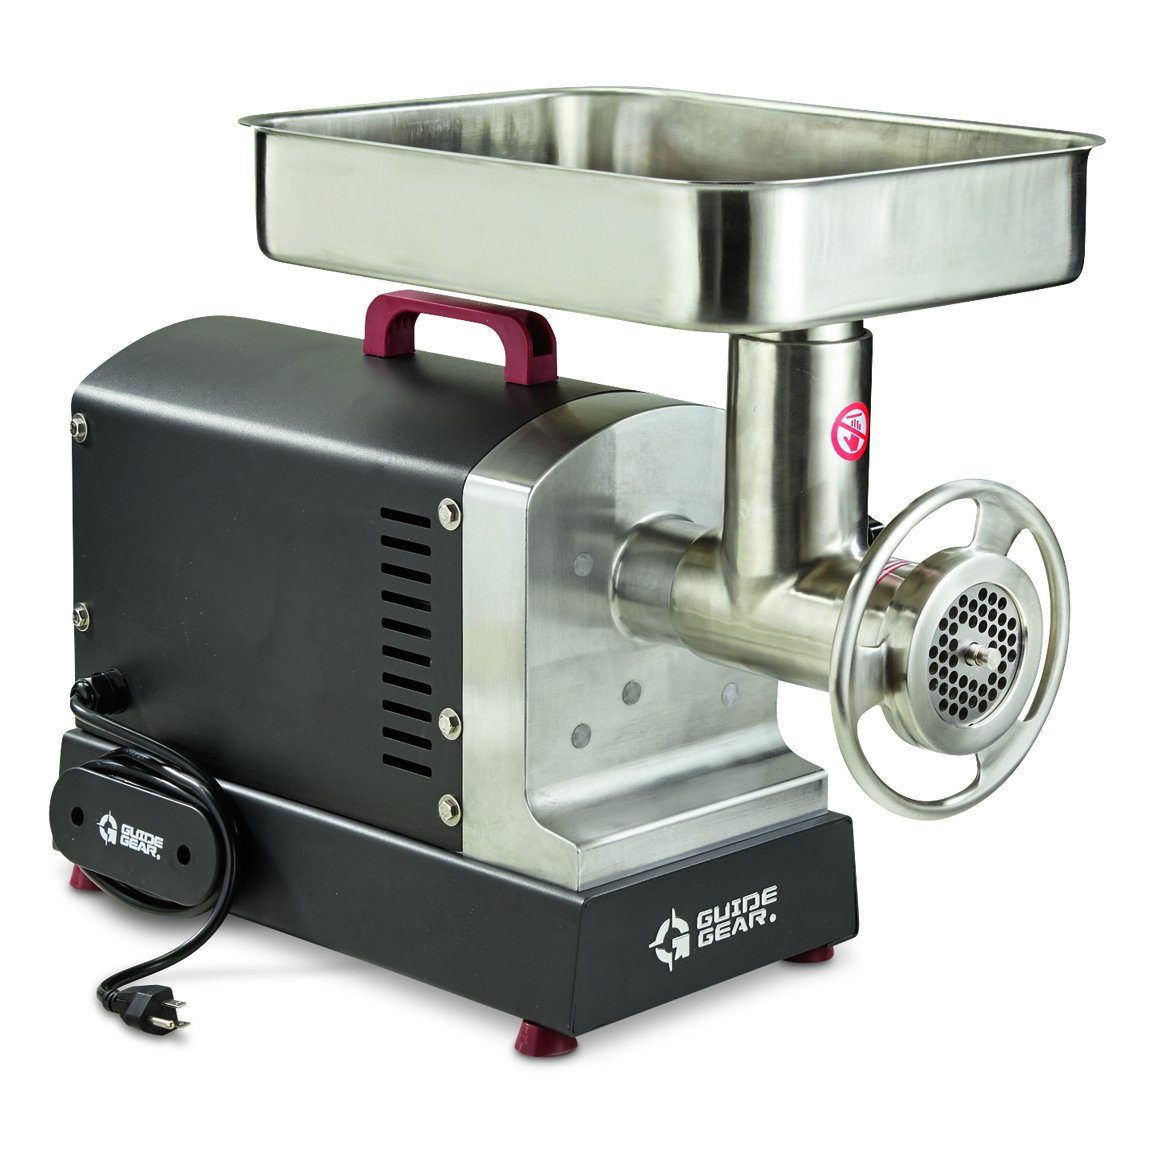 Guide Gear #22 Electric Commercial Grade Meat Grinder 1 hp